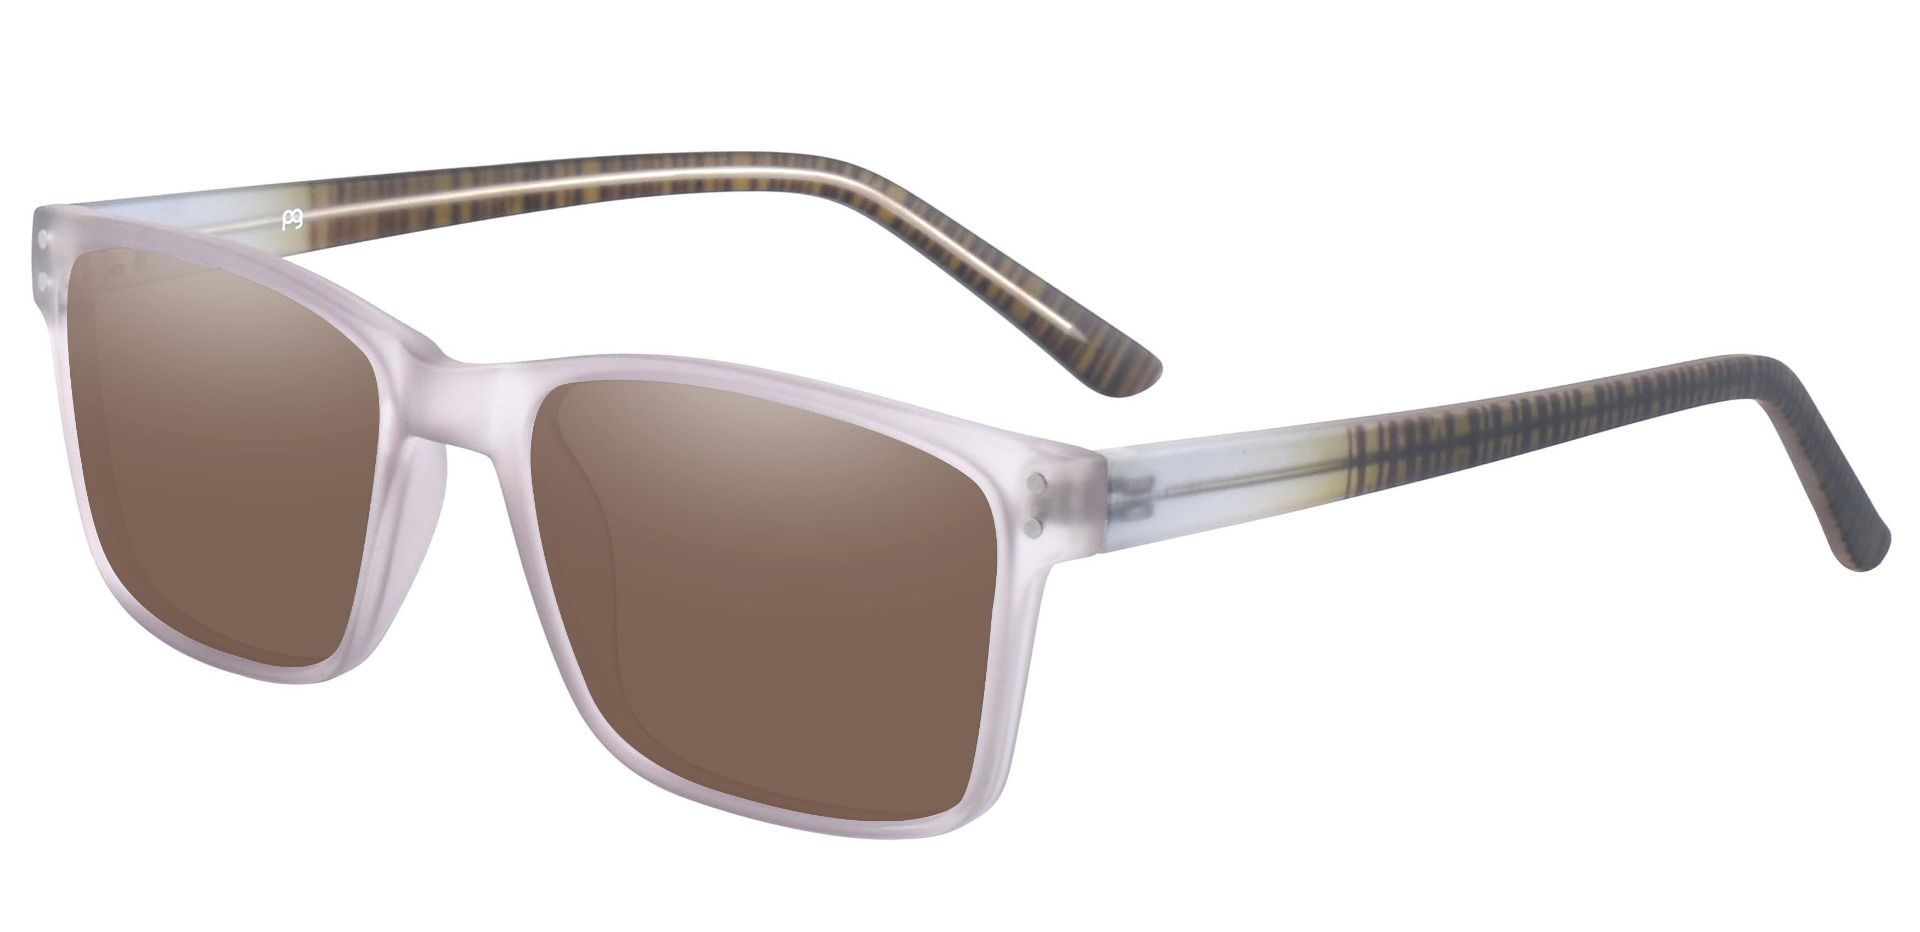 Royal Rectangle Prescription Sunglasses - Gray Frame With Brown Lenses